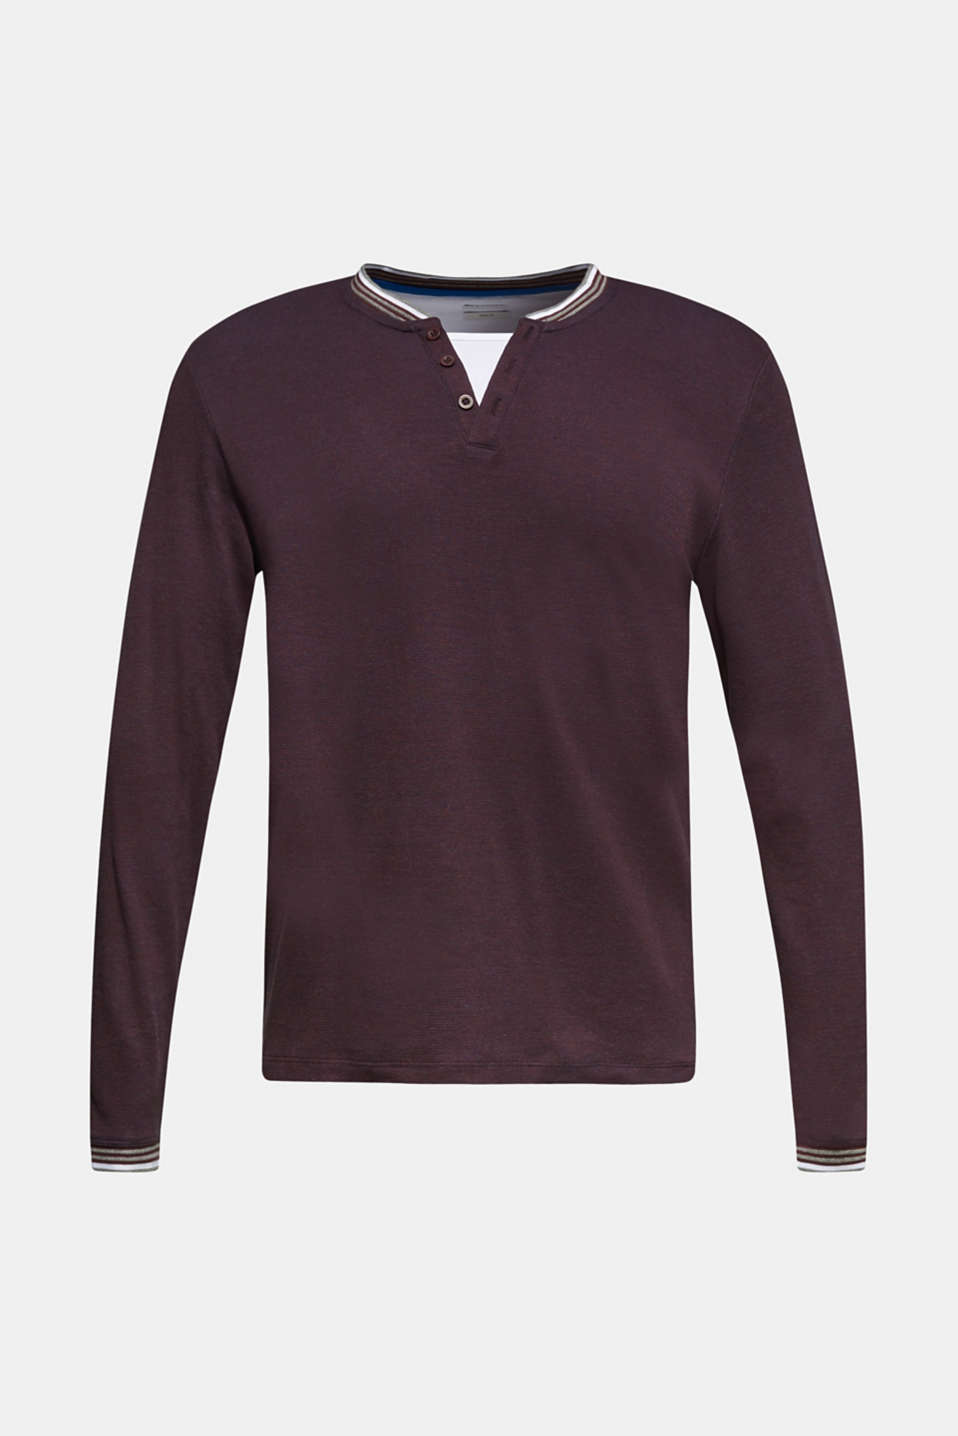 Long sleeve jersey top in a layered look, BORDEAUX RED, detail image number 7